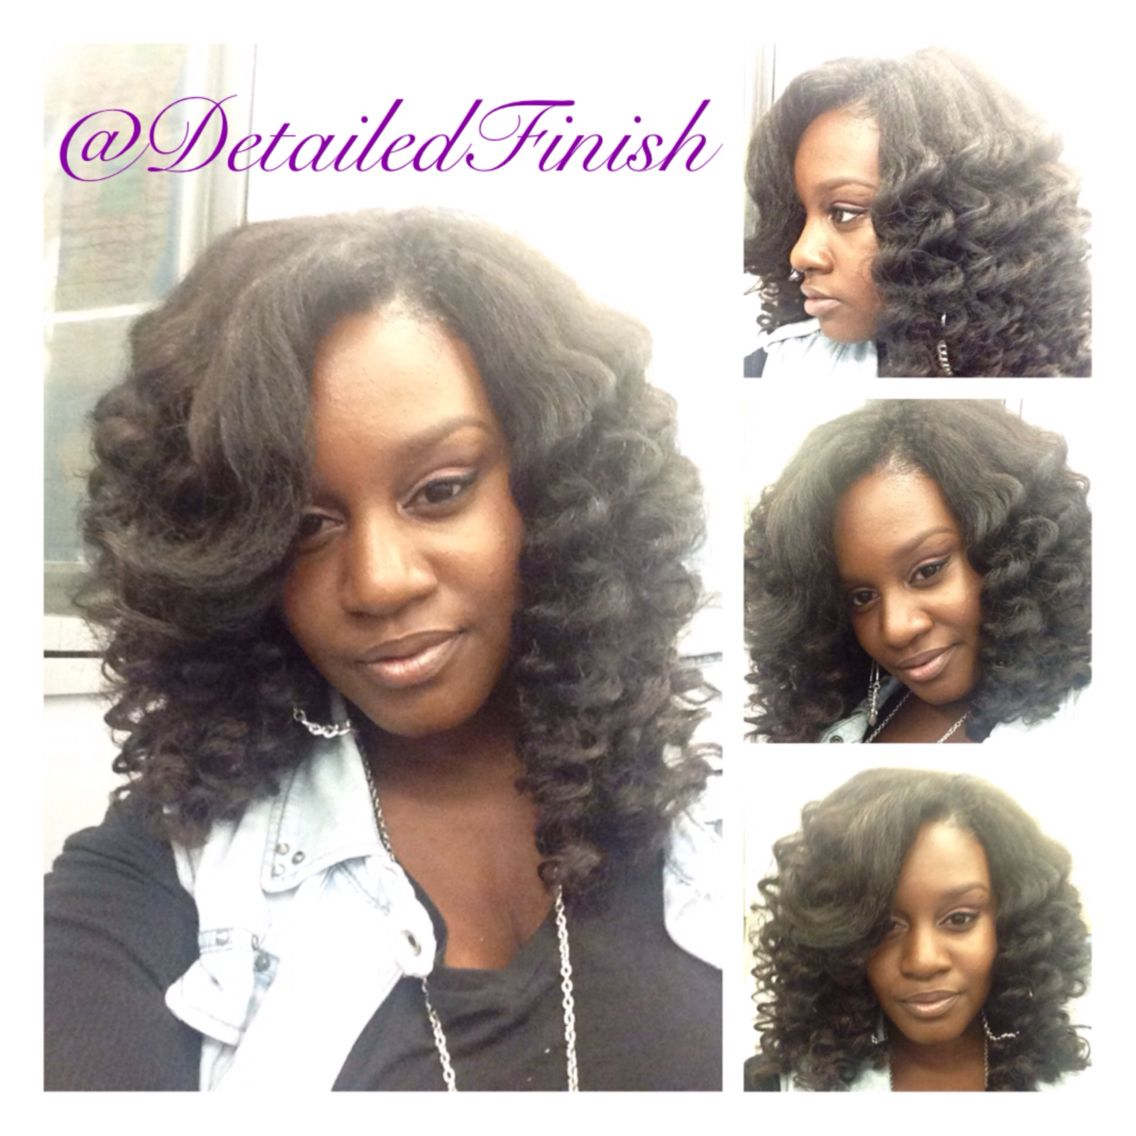 Side part wand like curls and a swoop bang looks so natural side part wand like curls and a swoop bang looks so natural love it marley hair detailedfinish crochet weave crochet braids invisible part pmusecretfo Image collections